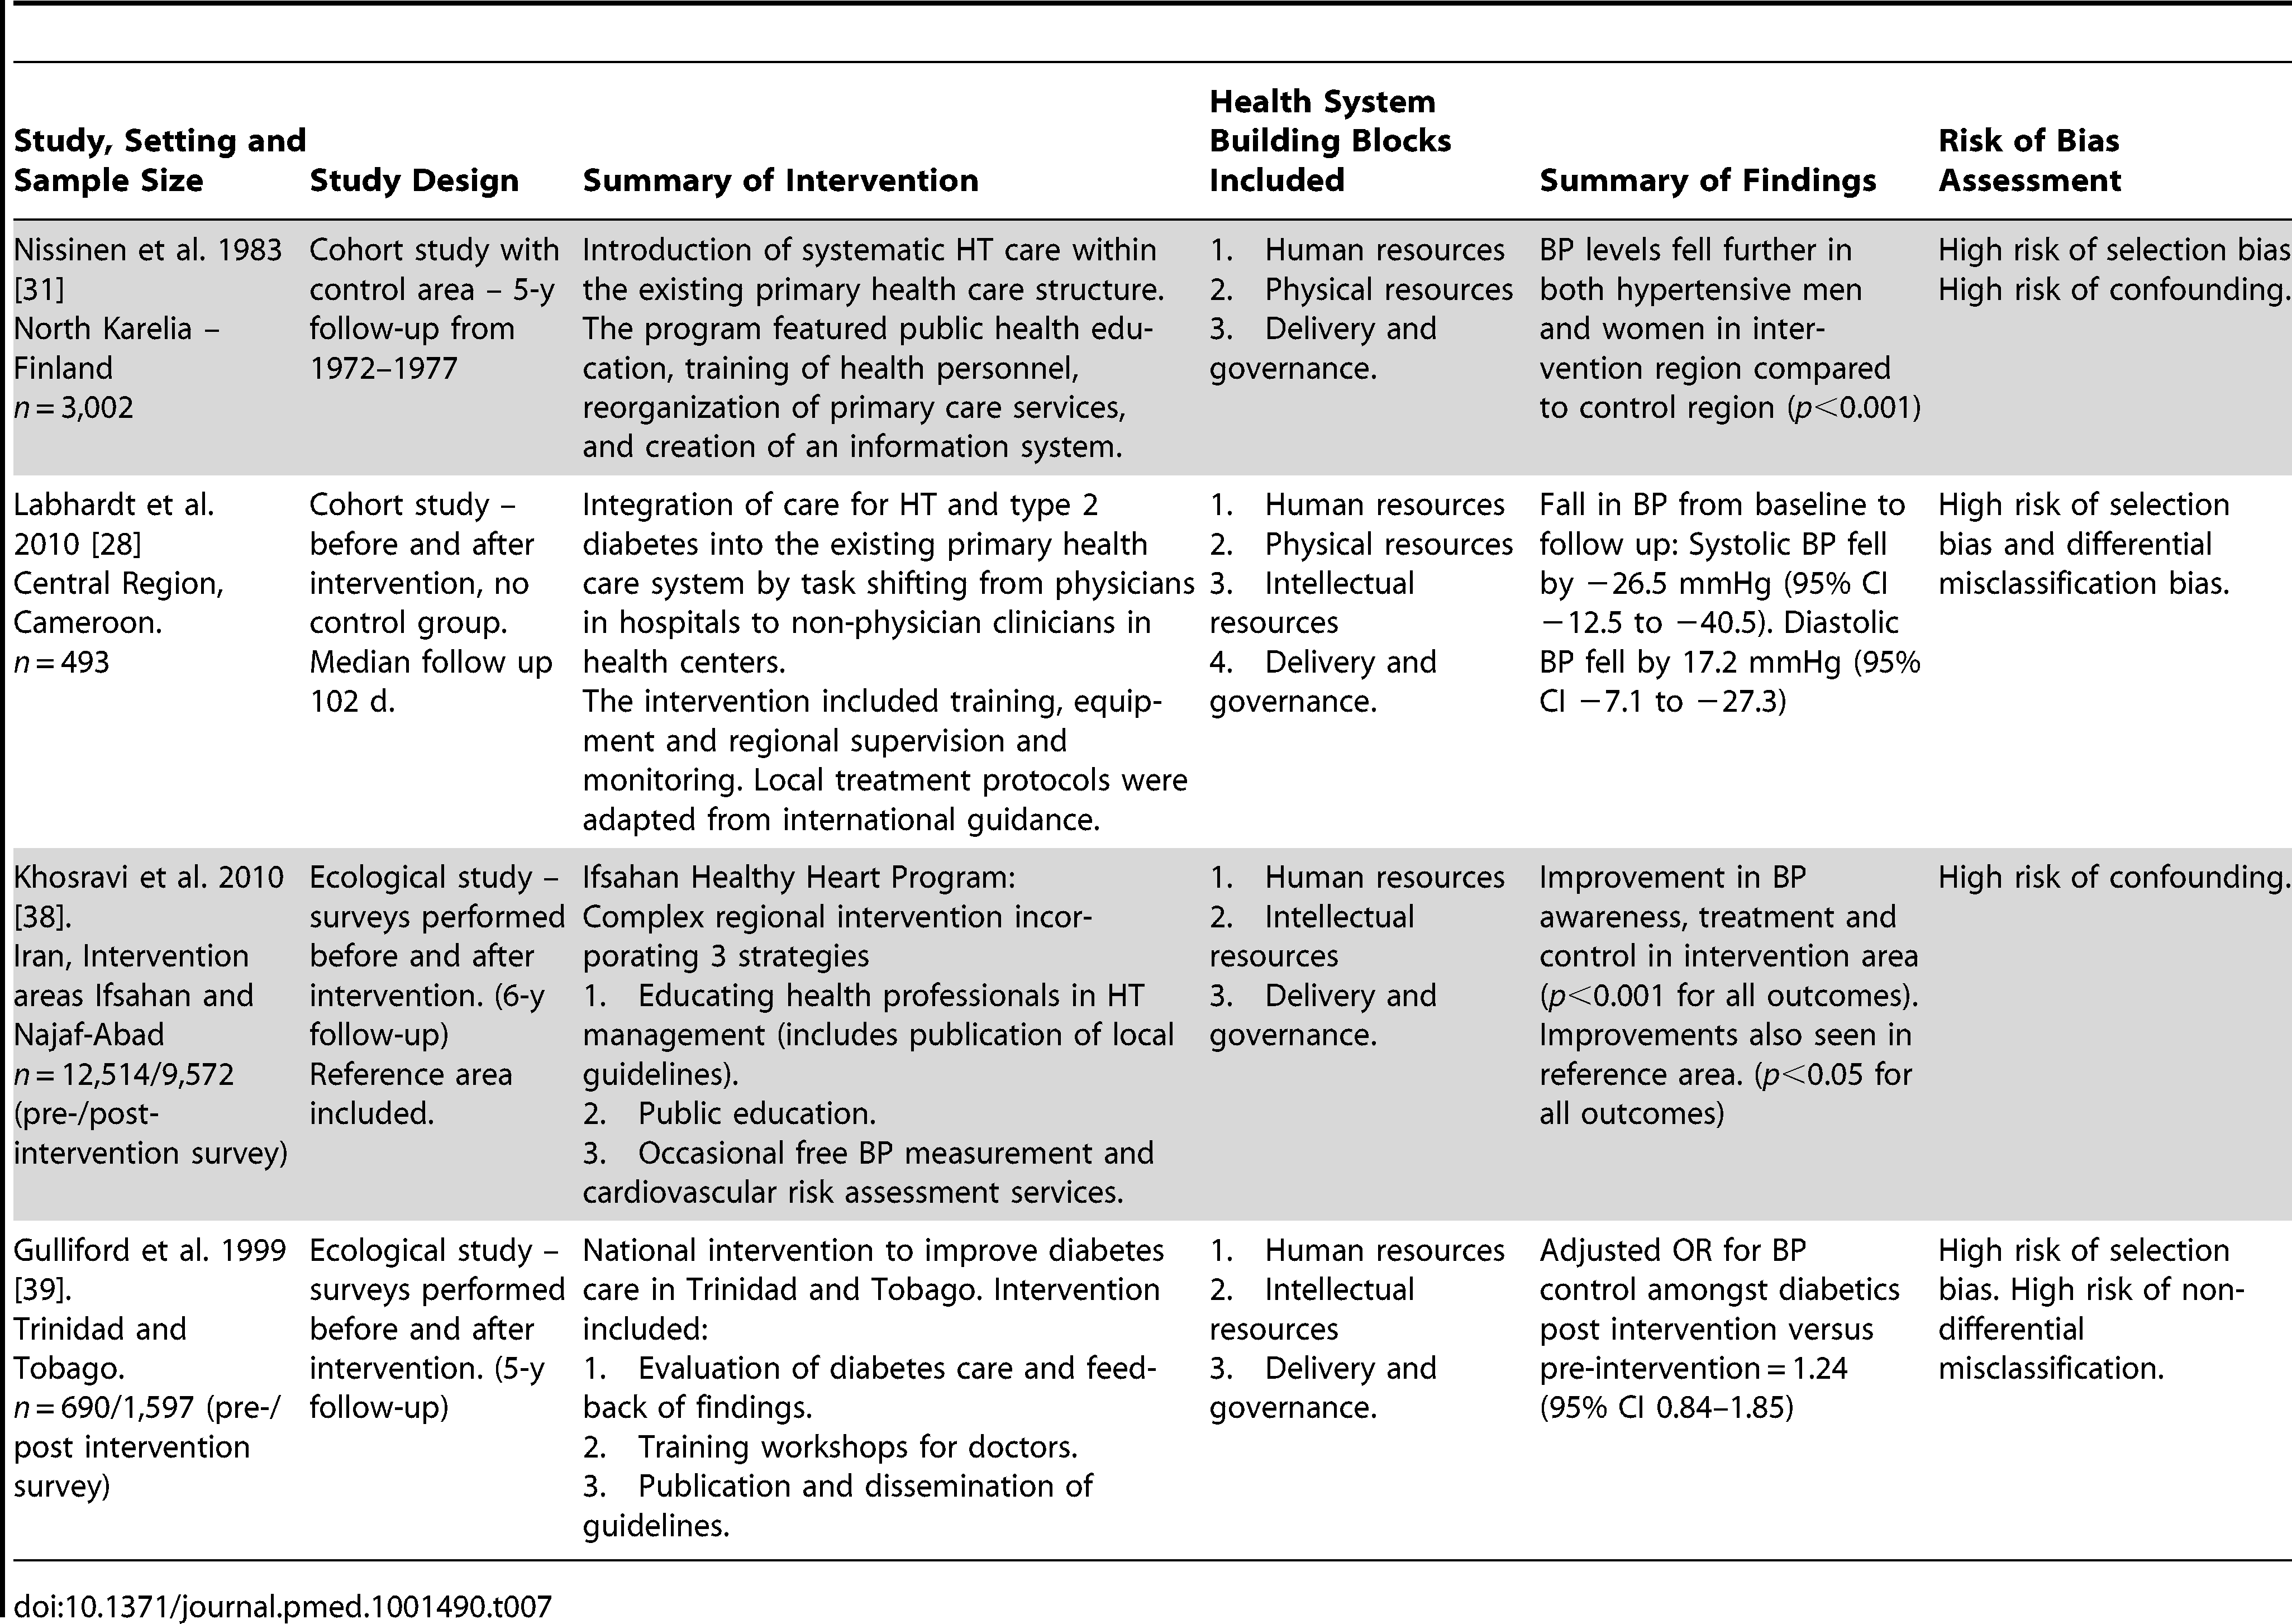 Description and summary of findings of studies evaluating complex national or regional interventions incorporating components from more than one health system building block.